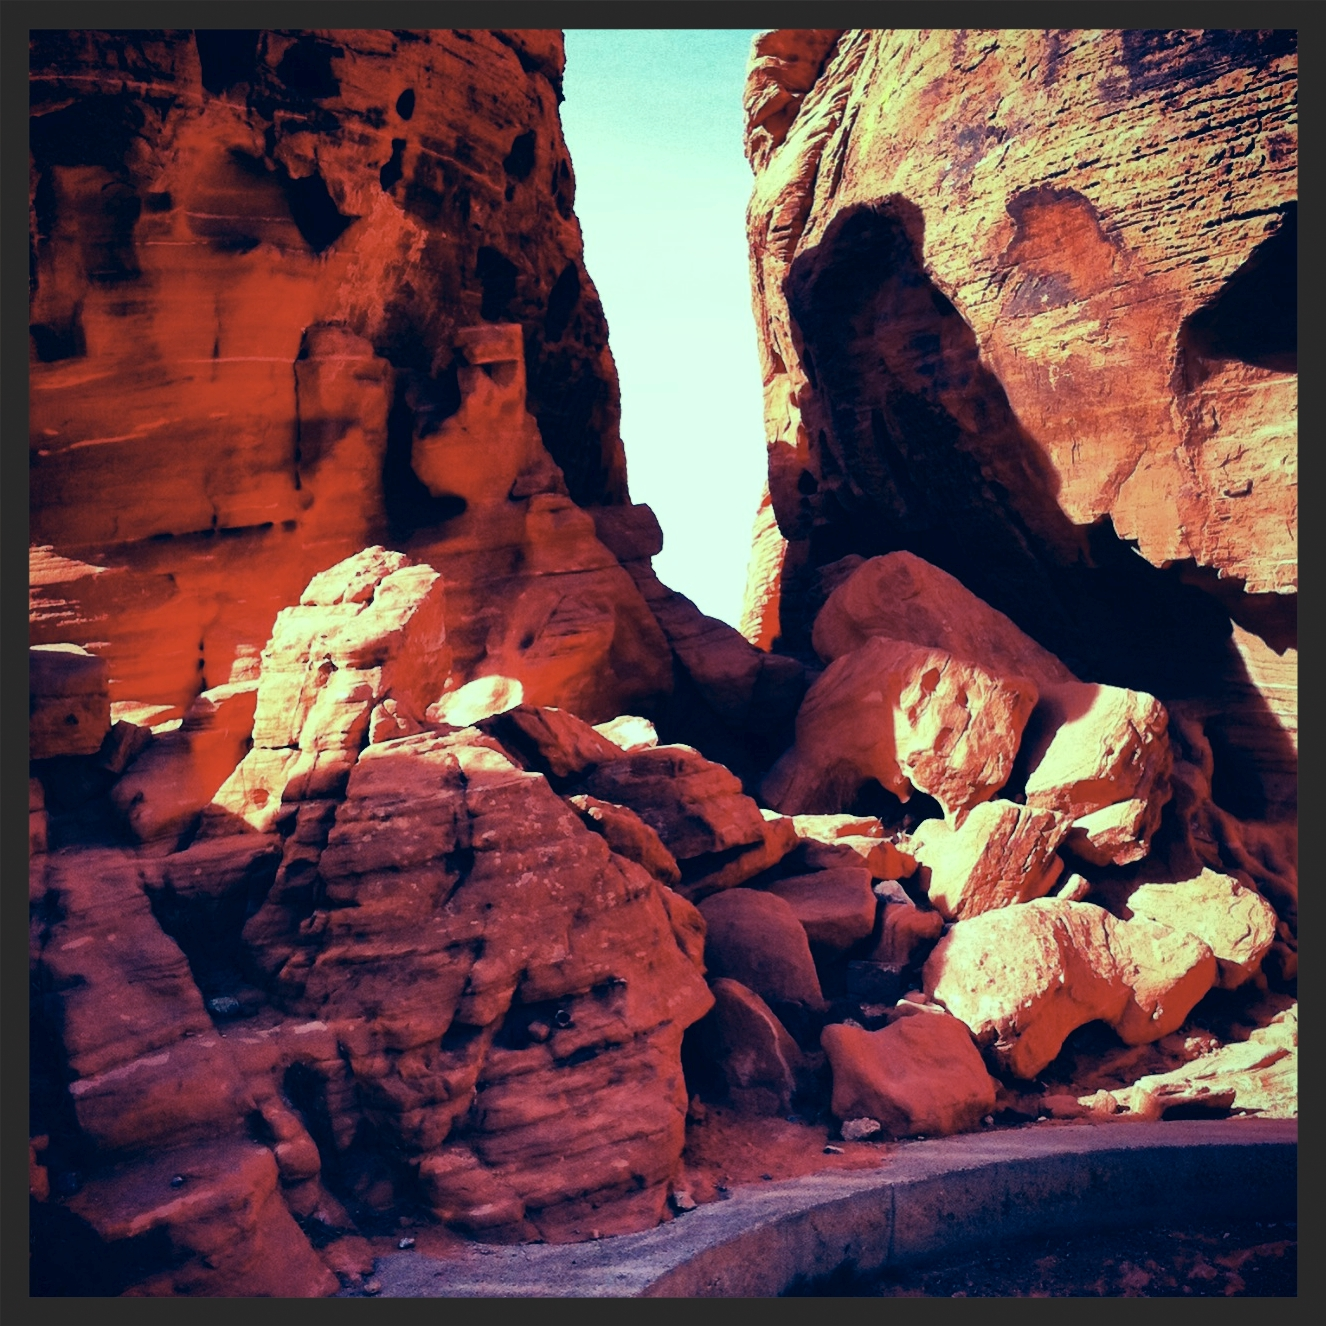 IMG_5405valleyoffire.JPG